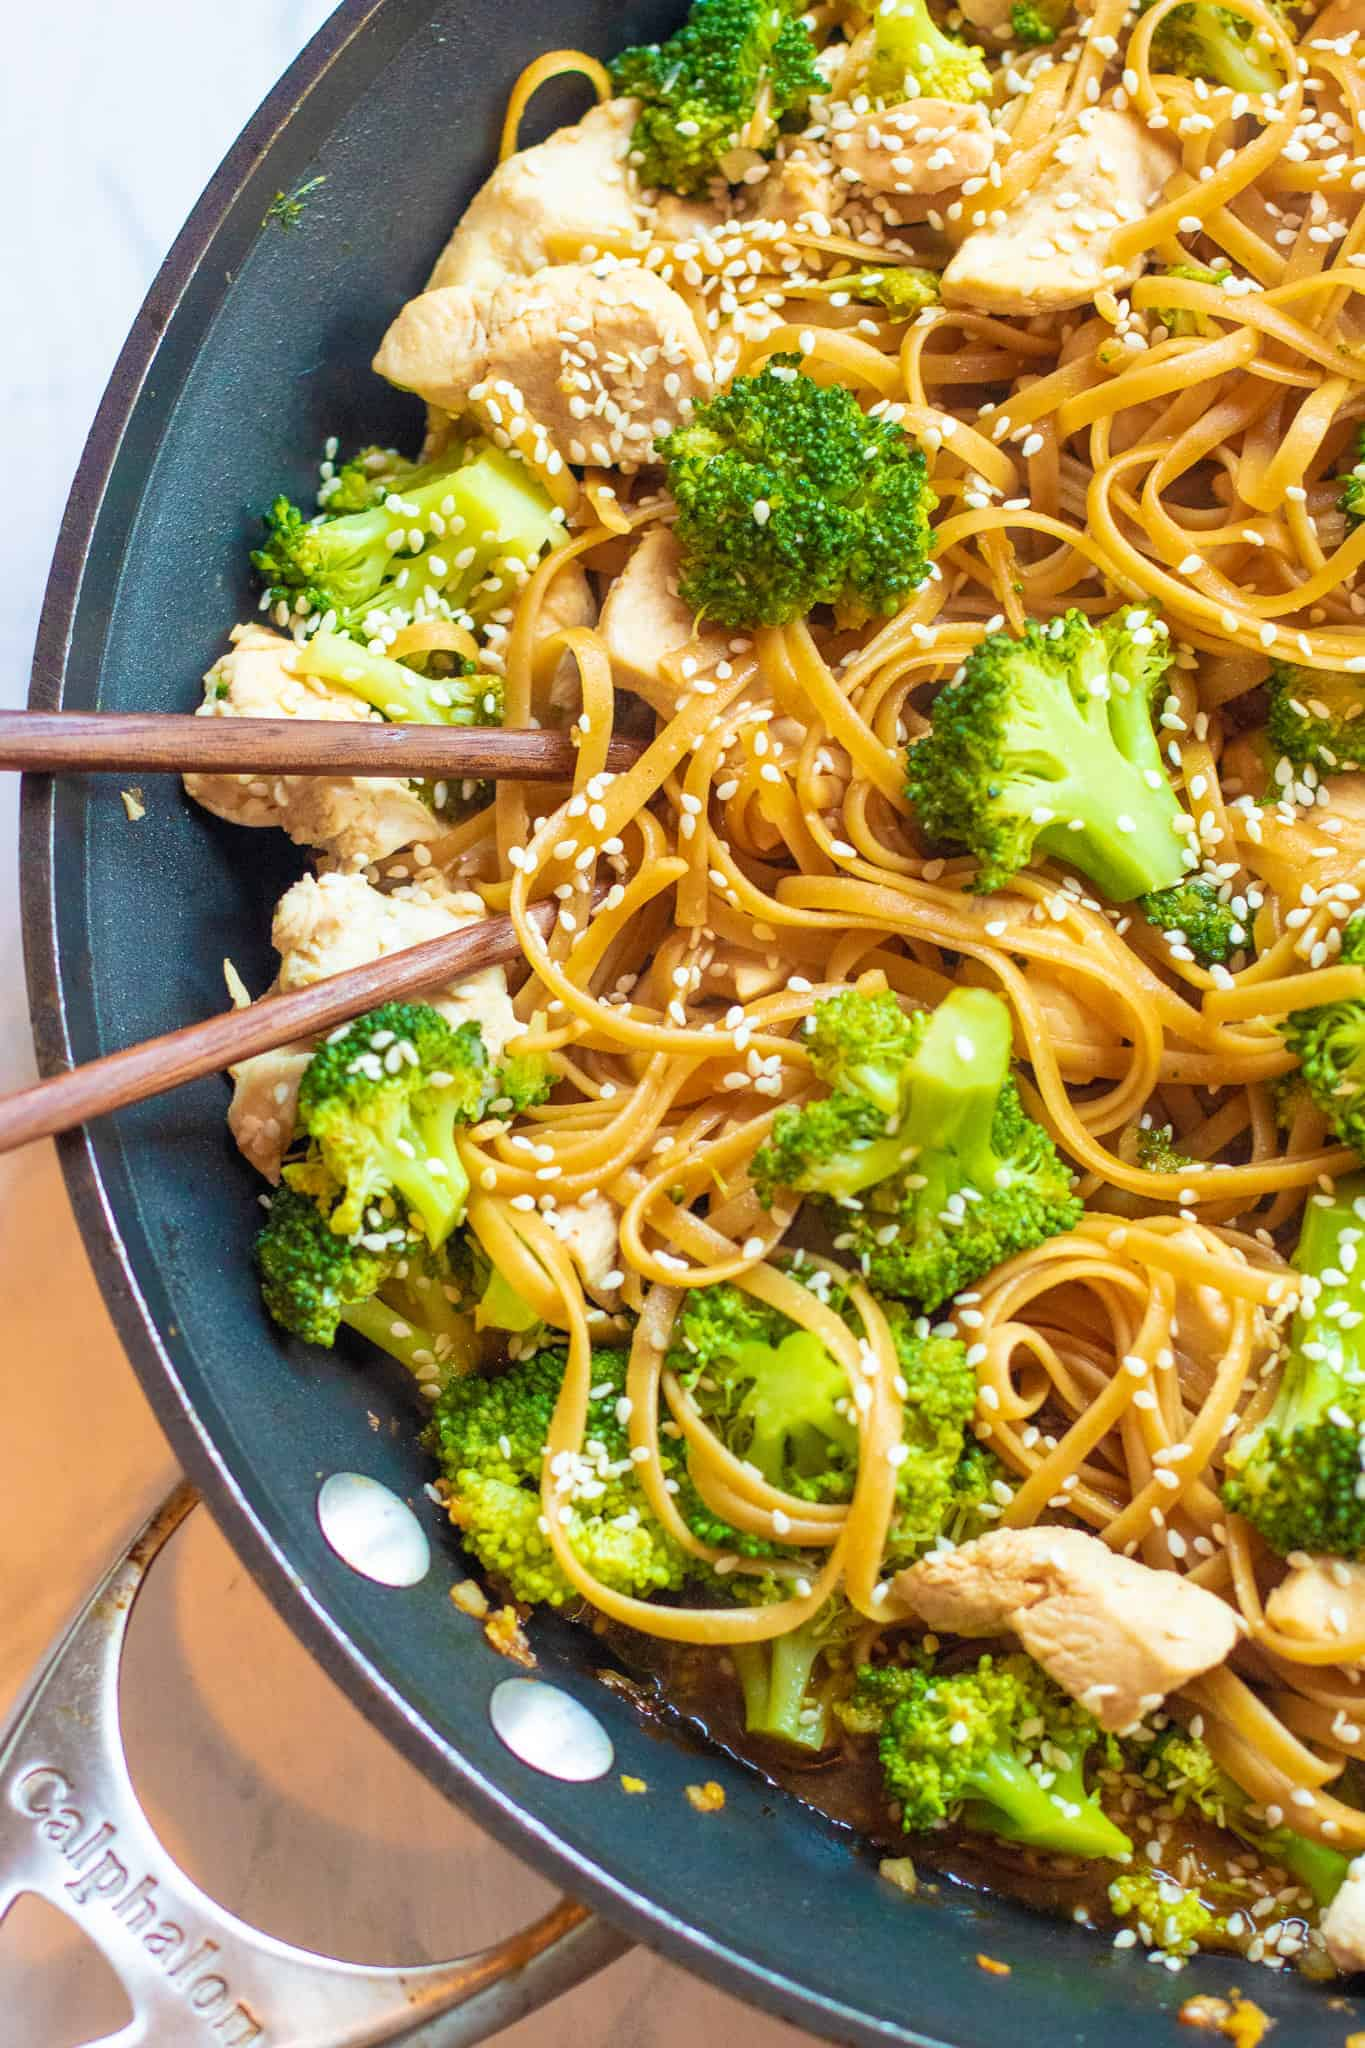 This Chicken and Broccoli Noodles dish is super simple to make, can be done in 30 minutes, and a super healthy alternative to any take out dish.